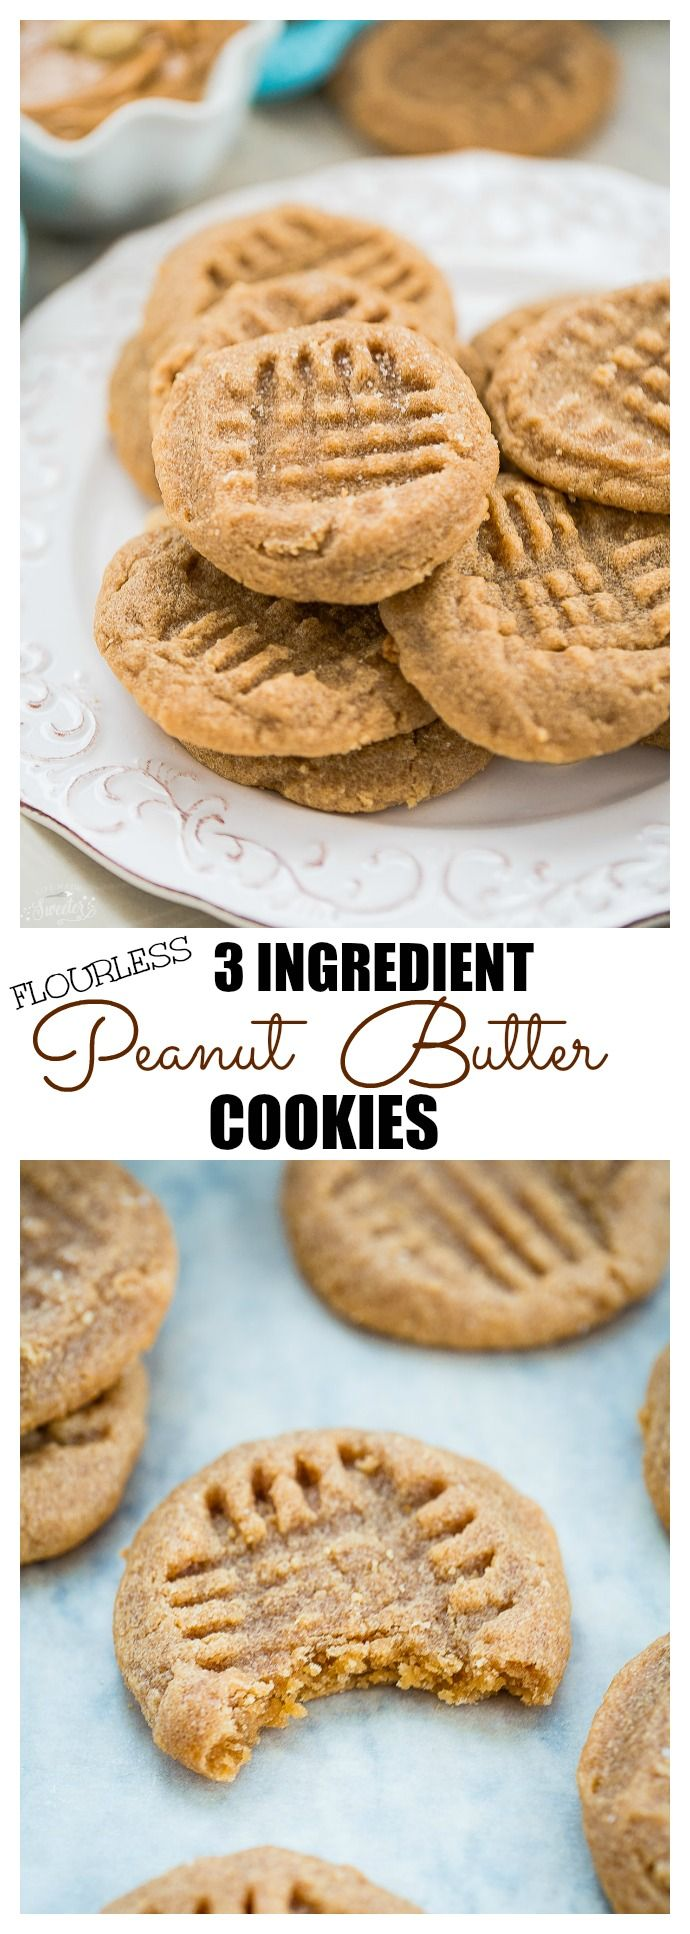 Flourless 3 Ingredient Peanut Butter Cookies are perfectly soft, chewy & super easy to make! Plus they're naturally gluten free, VEGAN & contain NO butter or OIL! Goes best with a nice cold glass of milk. Can sub with almond butter too - SO good!!